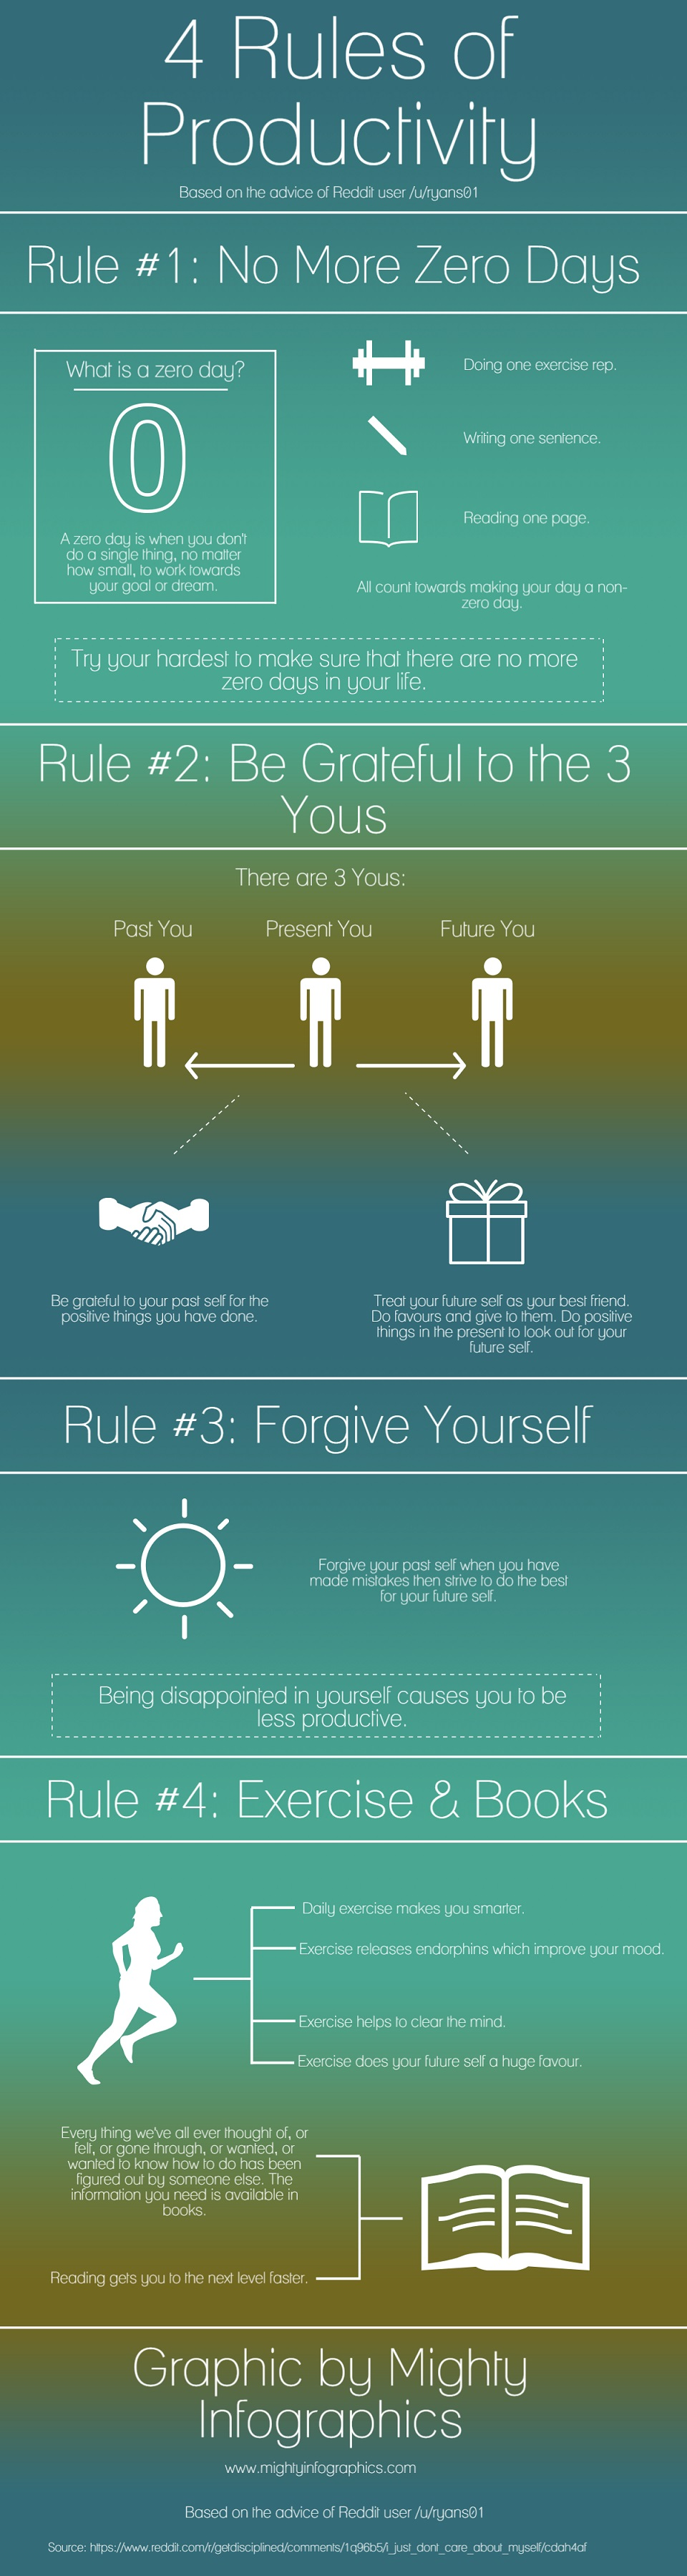 4 rules of productivity infographic based on the advice of reddit user ryans01